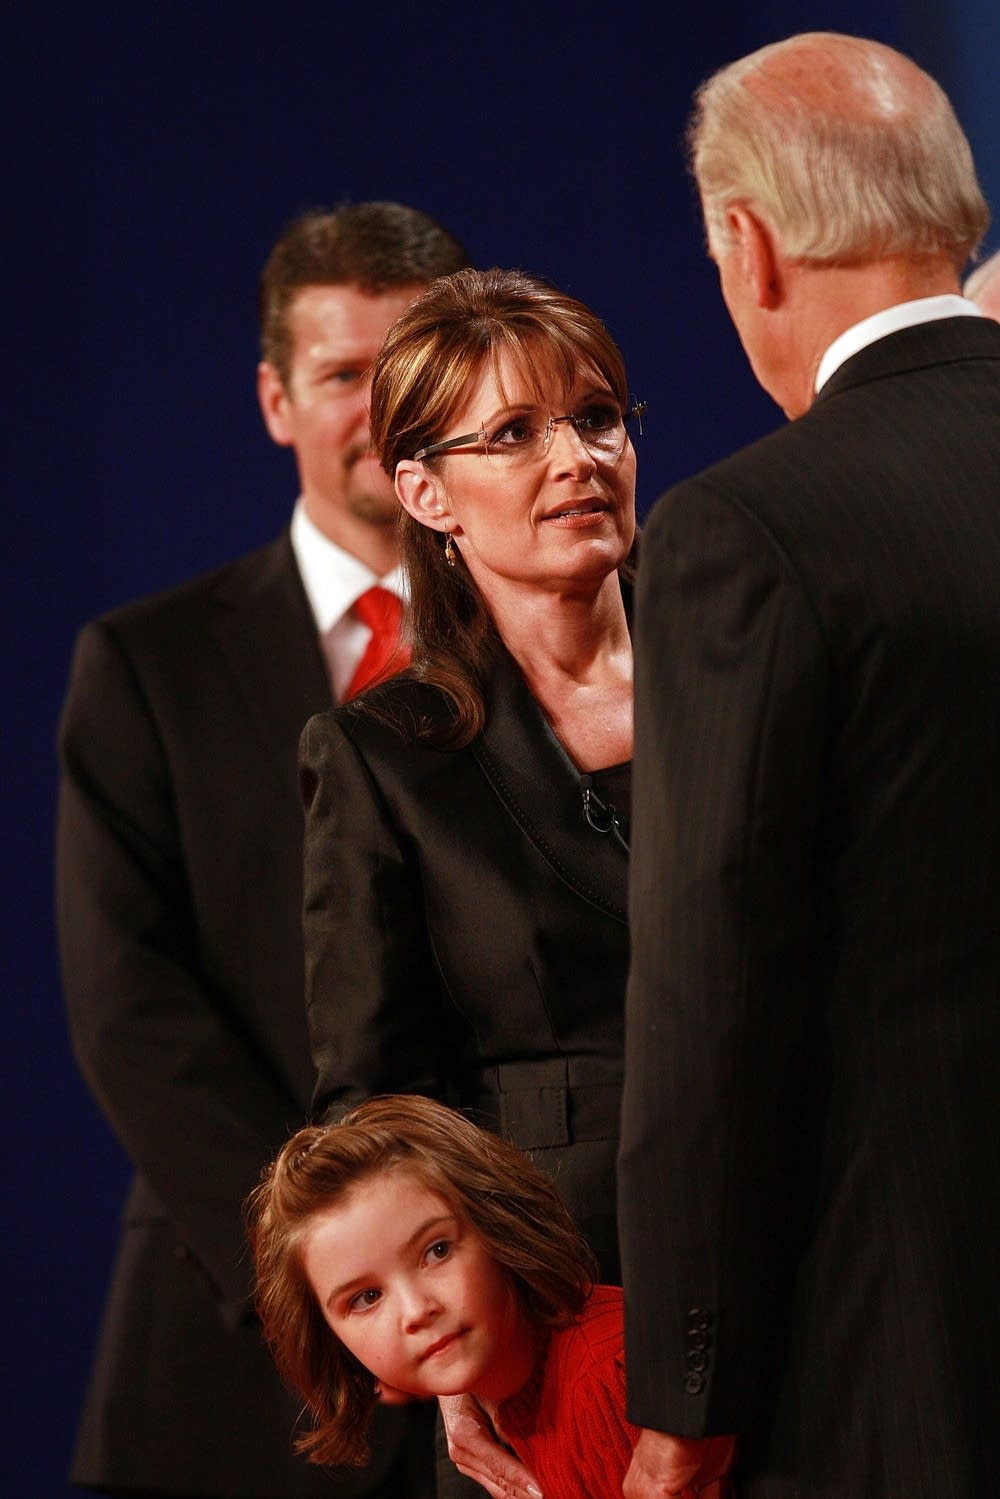 Biden And Palin after the debate